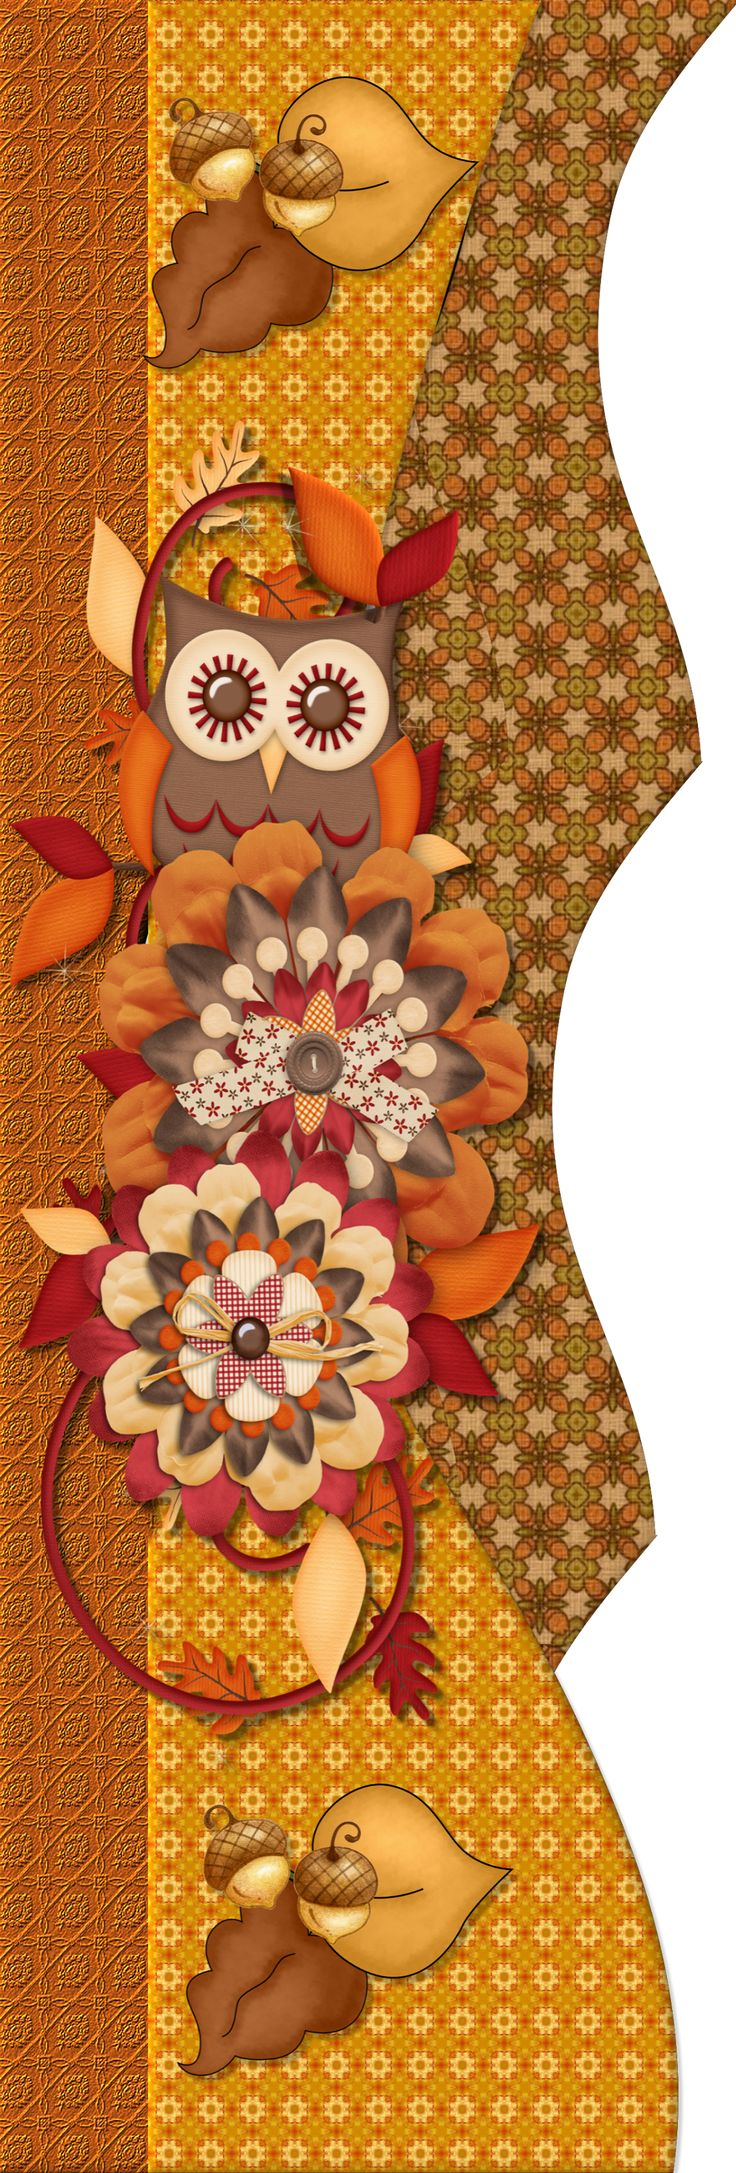 Scrapbook ideas with flowers - Autumn Fall Owl Scrapbook Bordersscrapbook Embellishmentsscrapbook Layoutsfall